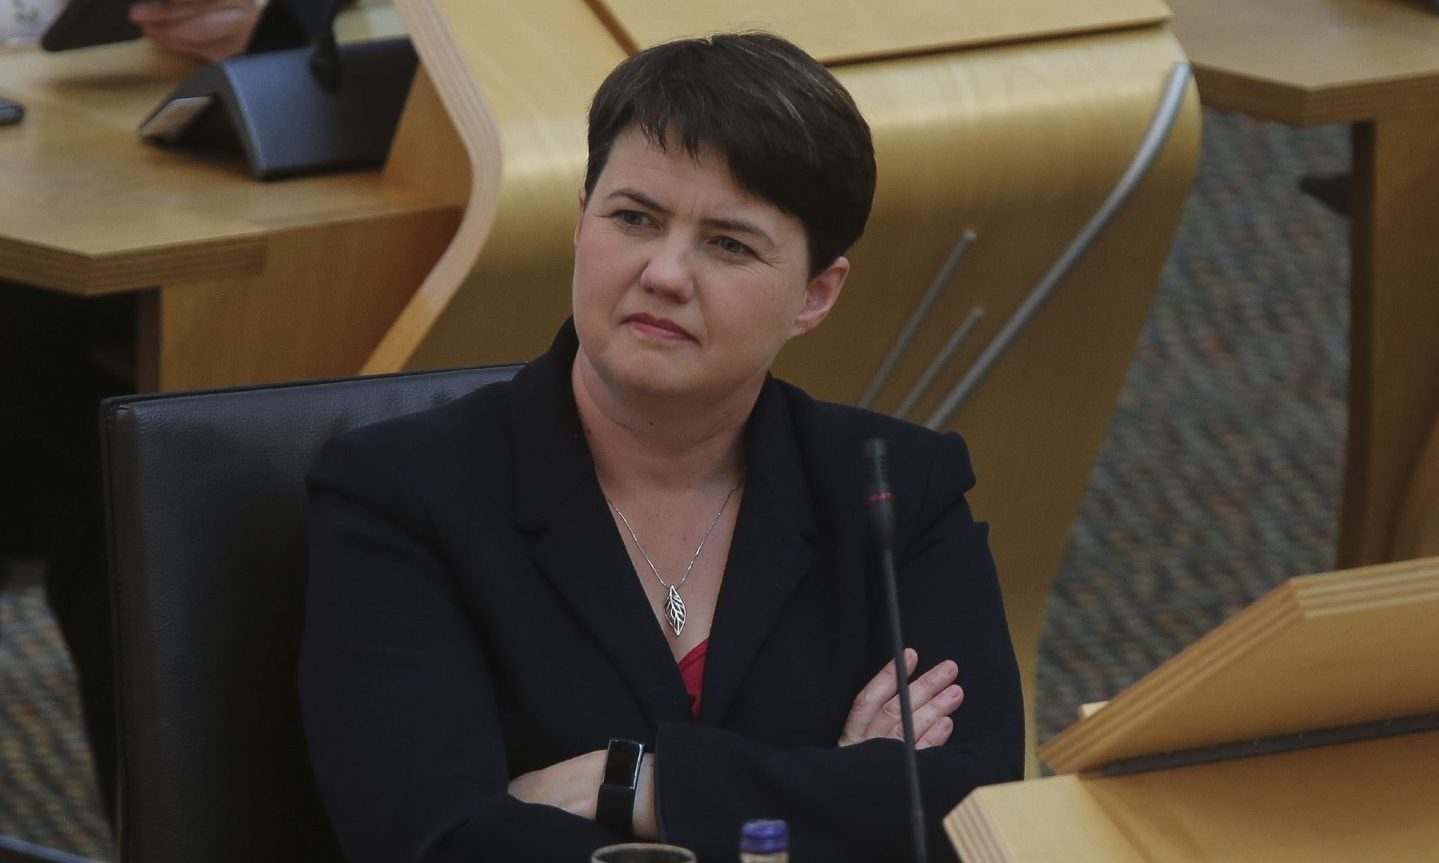 Ruth Davidson, the reappointed leader of the Scottish Tories, during First Minister's Questions at the Scottish Parliament at Holyrood in Edinburgh on August 12